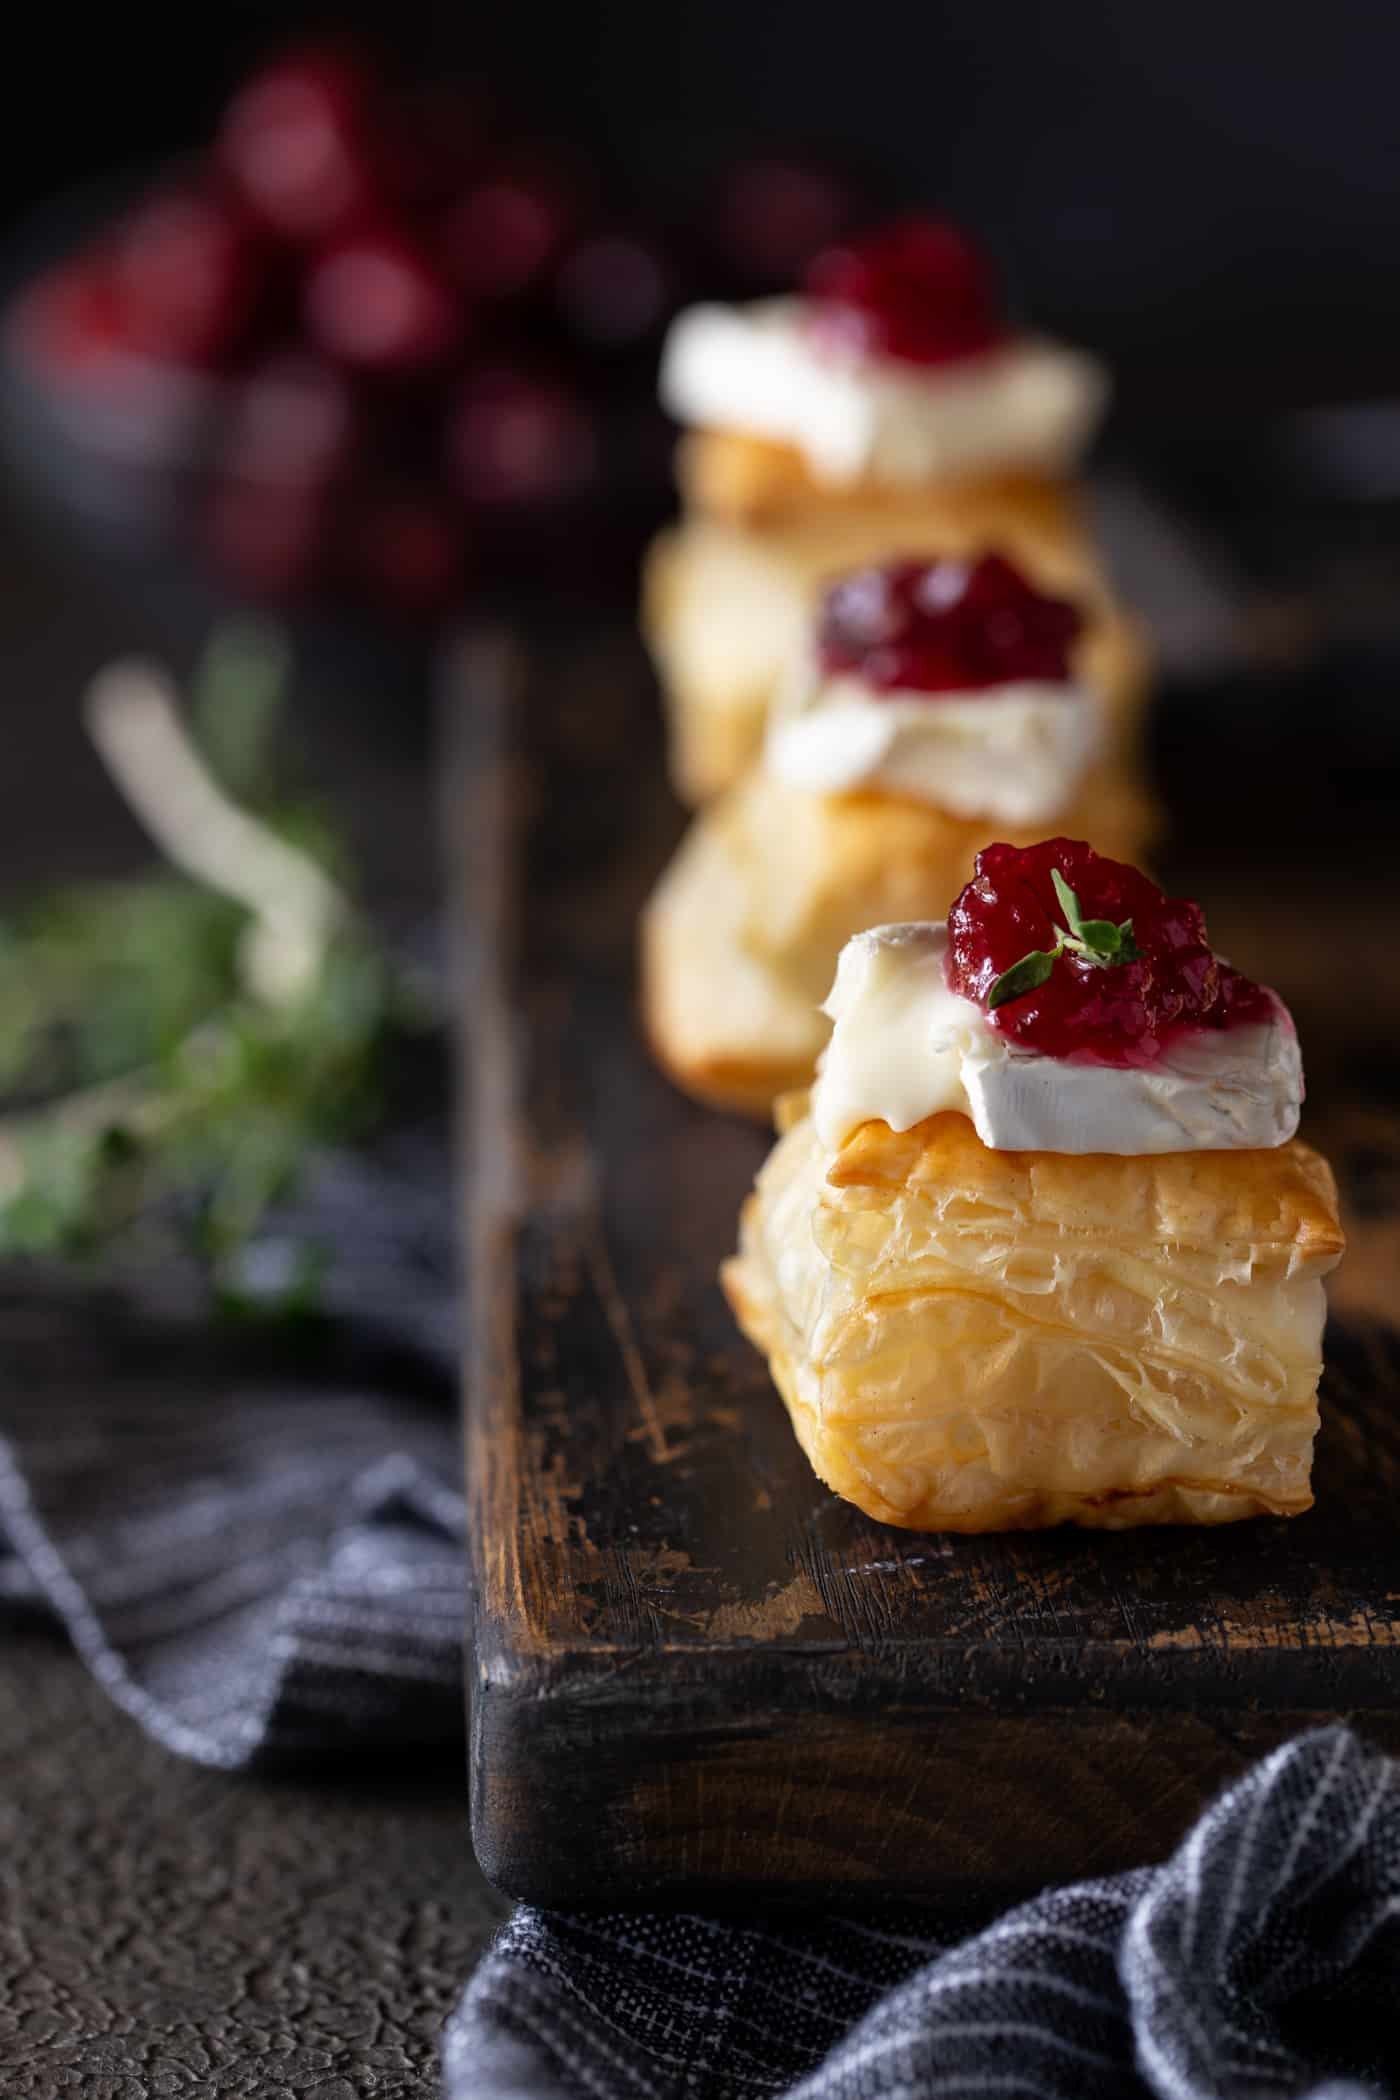 Puff Pastry Bite topped with slice of brie cheese and cranberry sauce and garnished with fresh thyme.